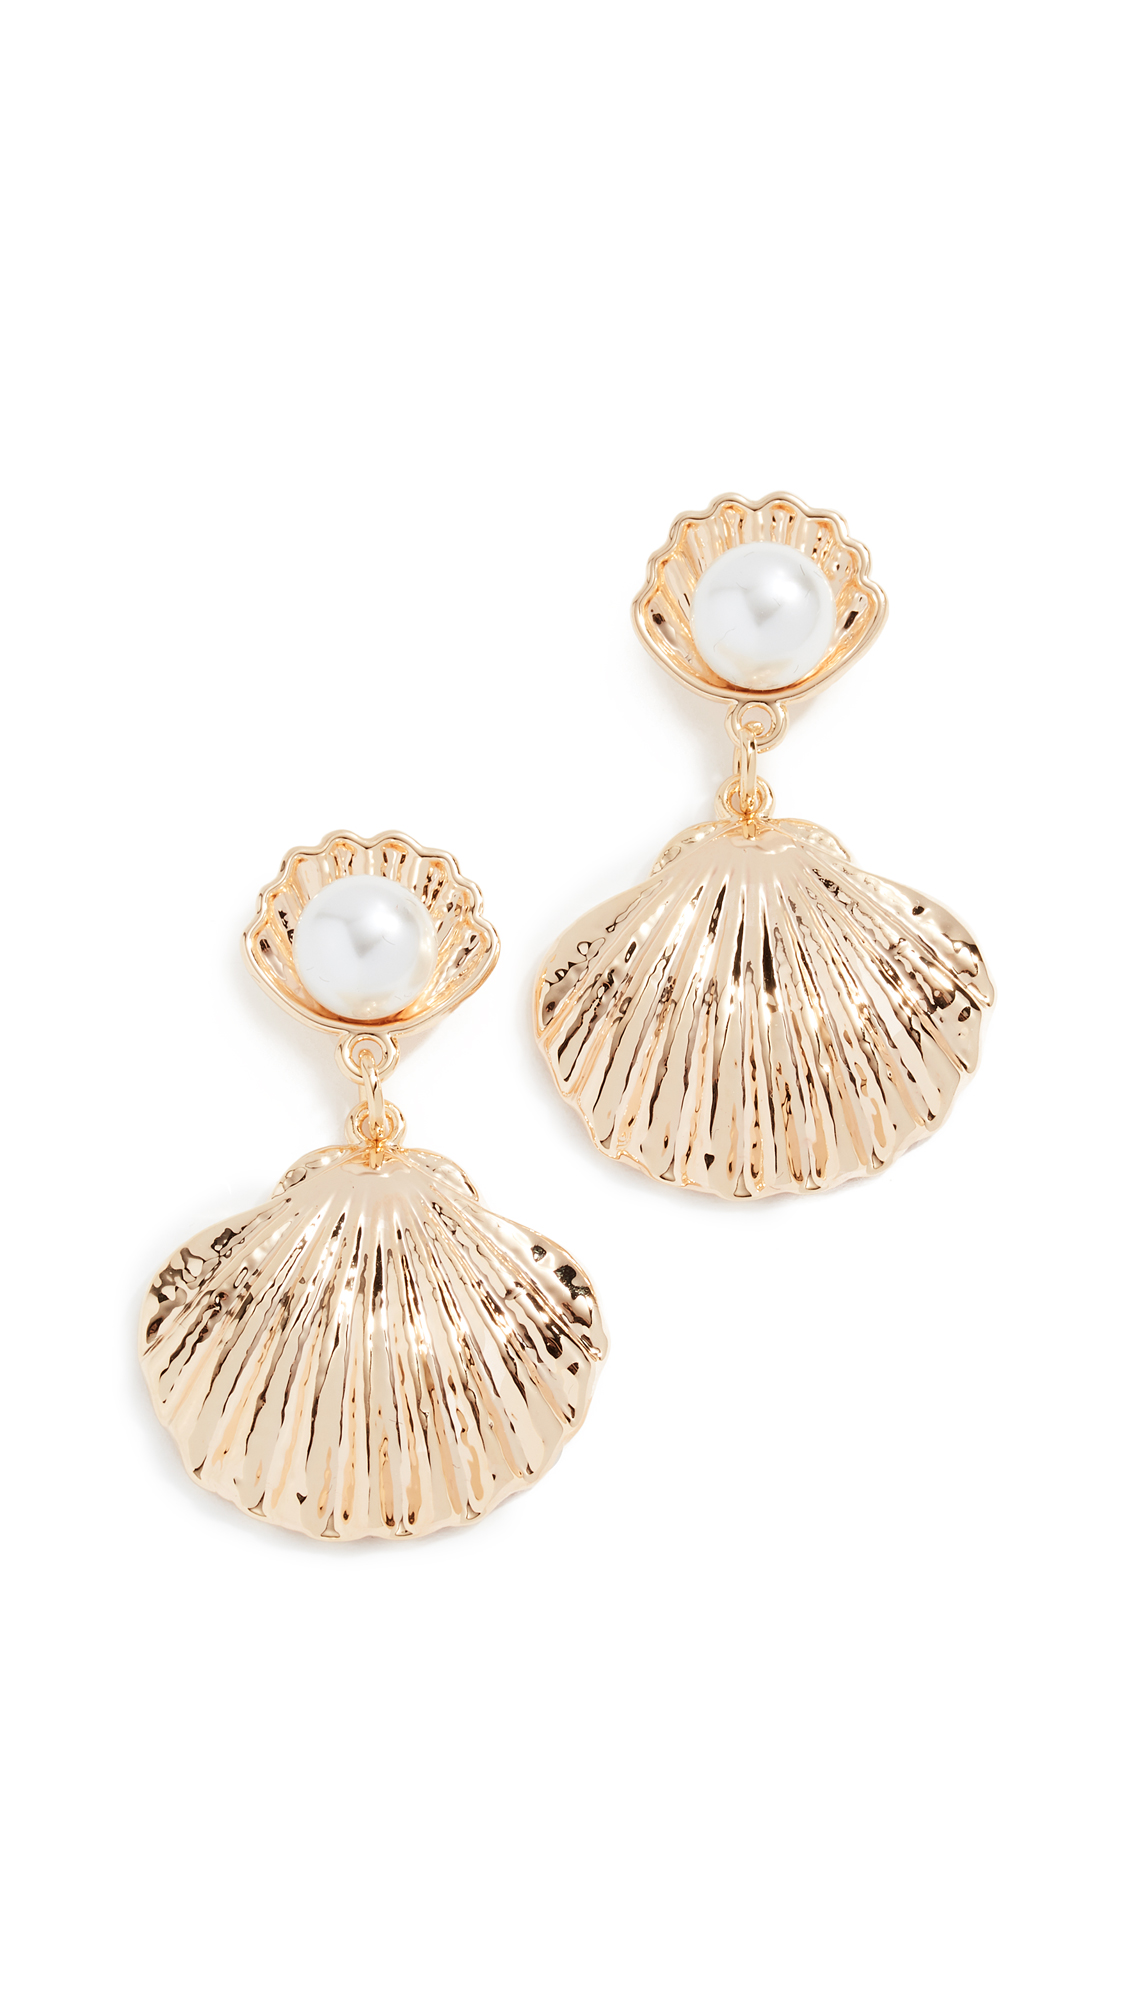 RELIQUIA Seashell Imitation Pearl Earrings in Yellow Gold/Pearl